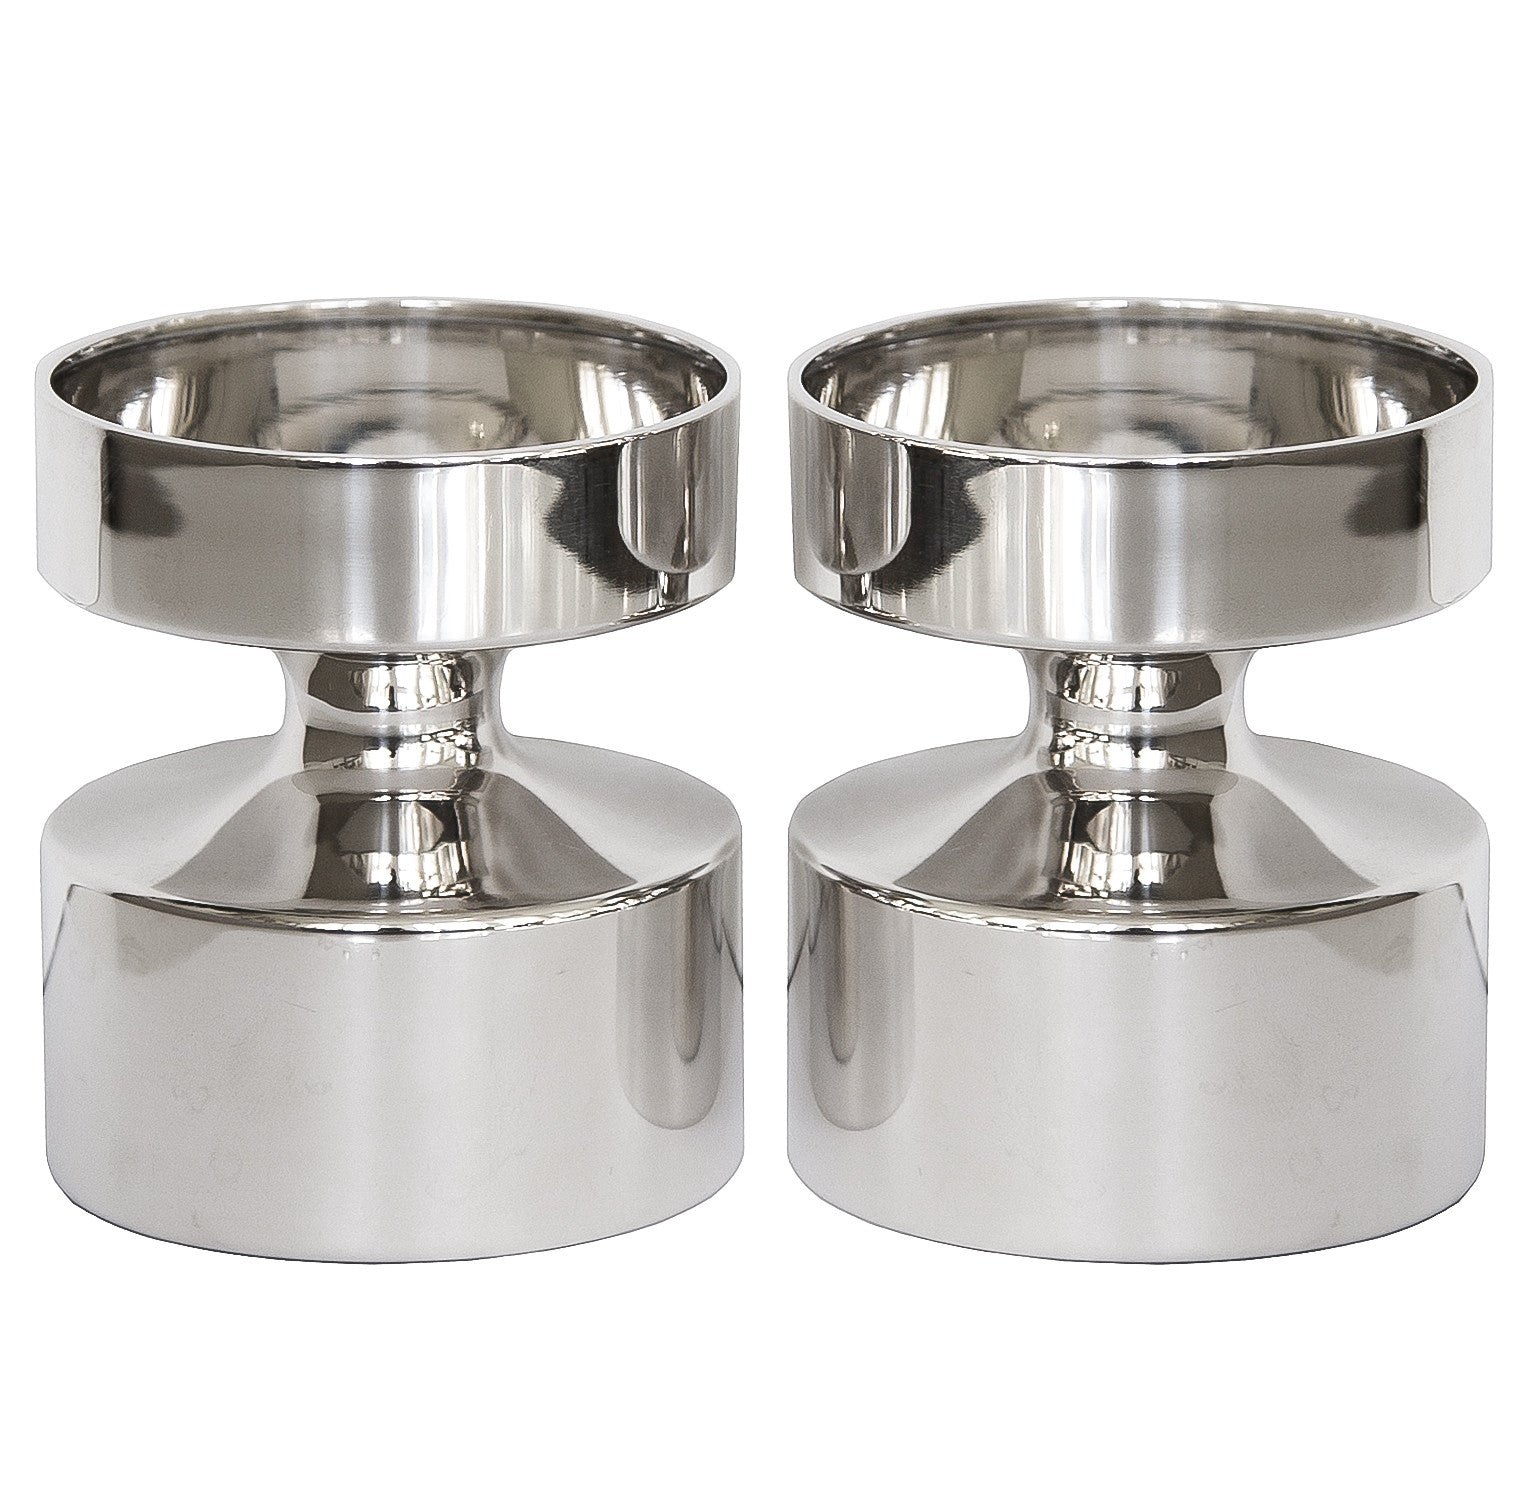 Pair of Eric Löfman Candleholders, Silver, 1960s - The Exchange Int